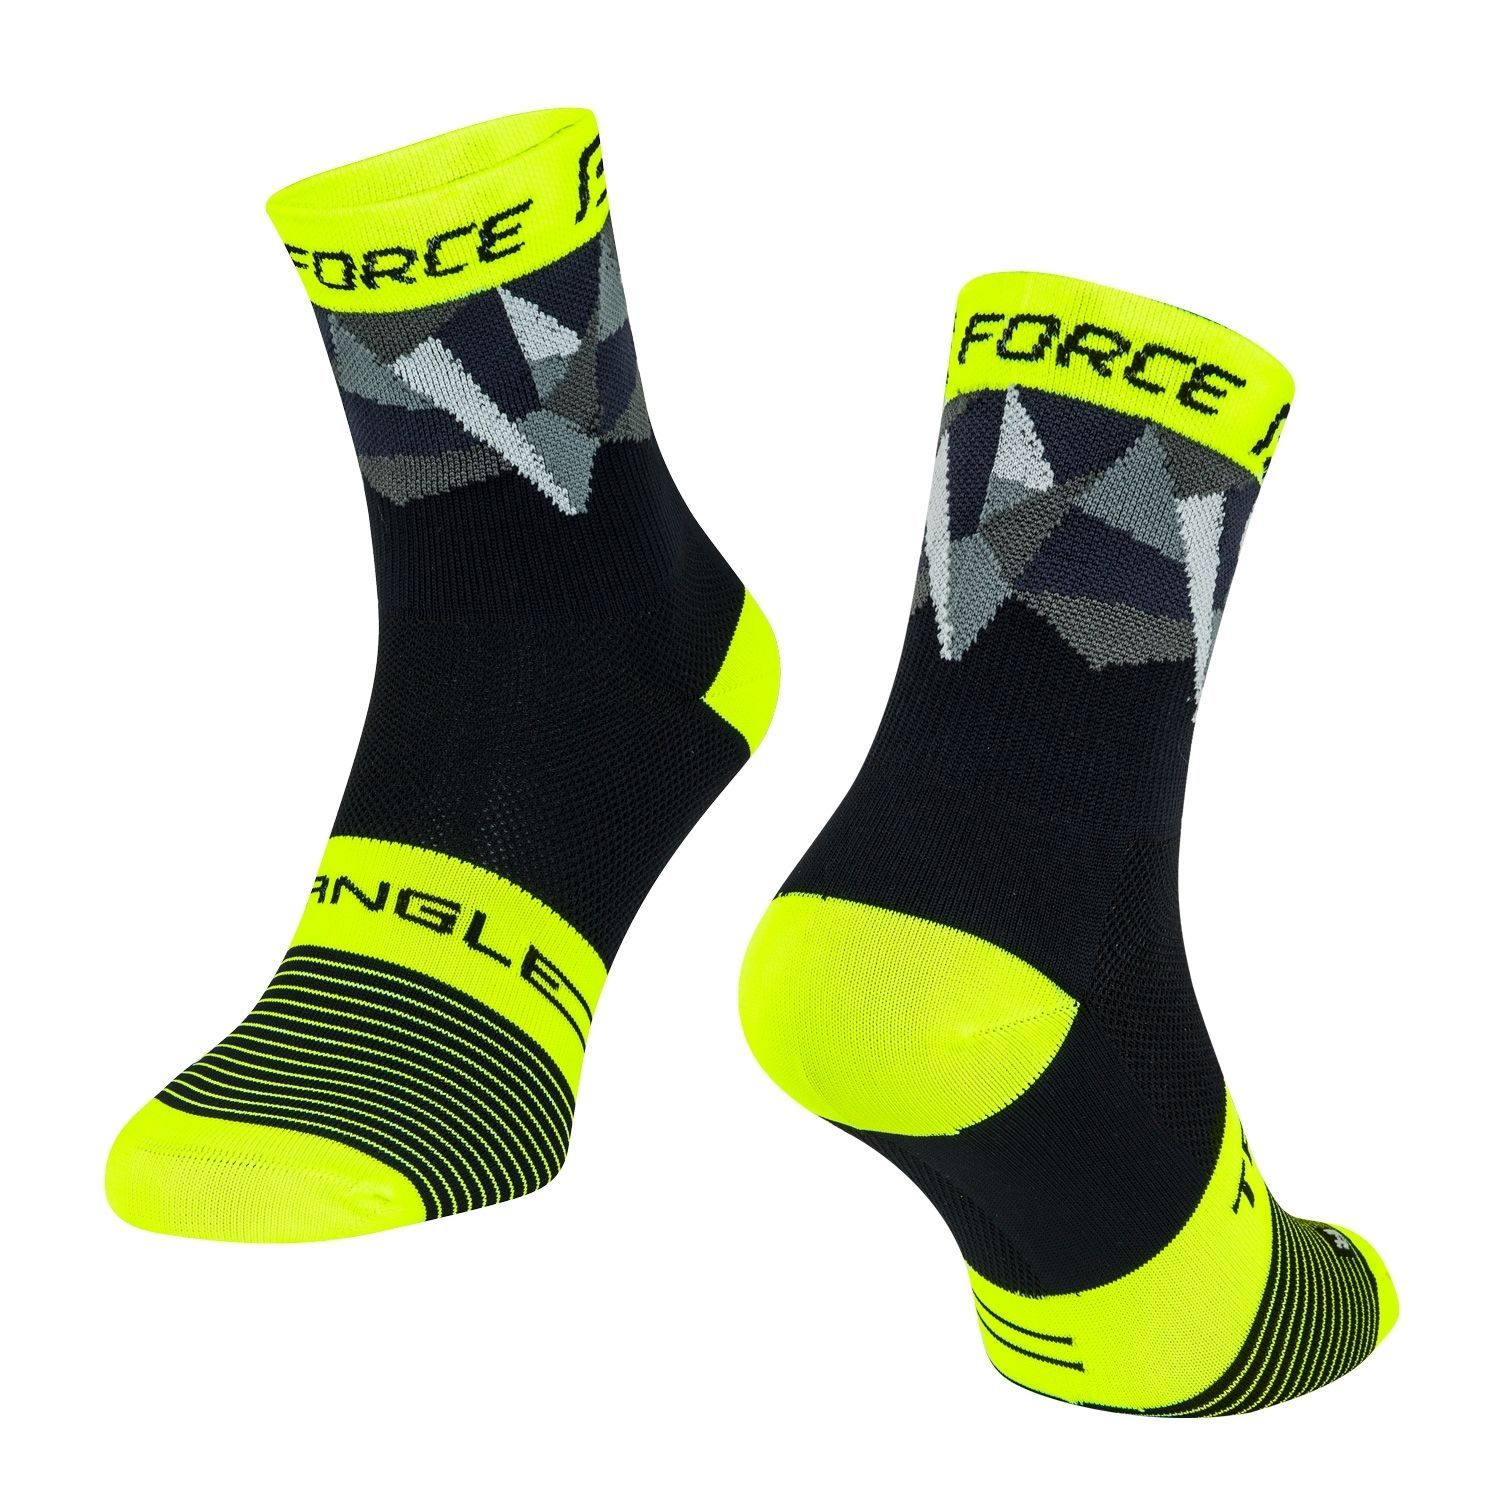 FORCE TRIANGLE Cycling Socks Black Fluo Yellow 900922 23